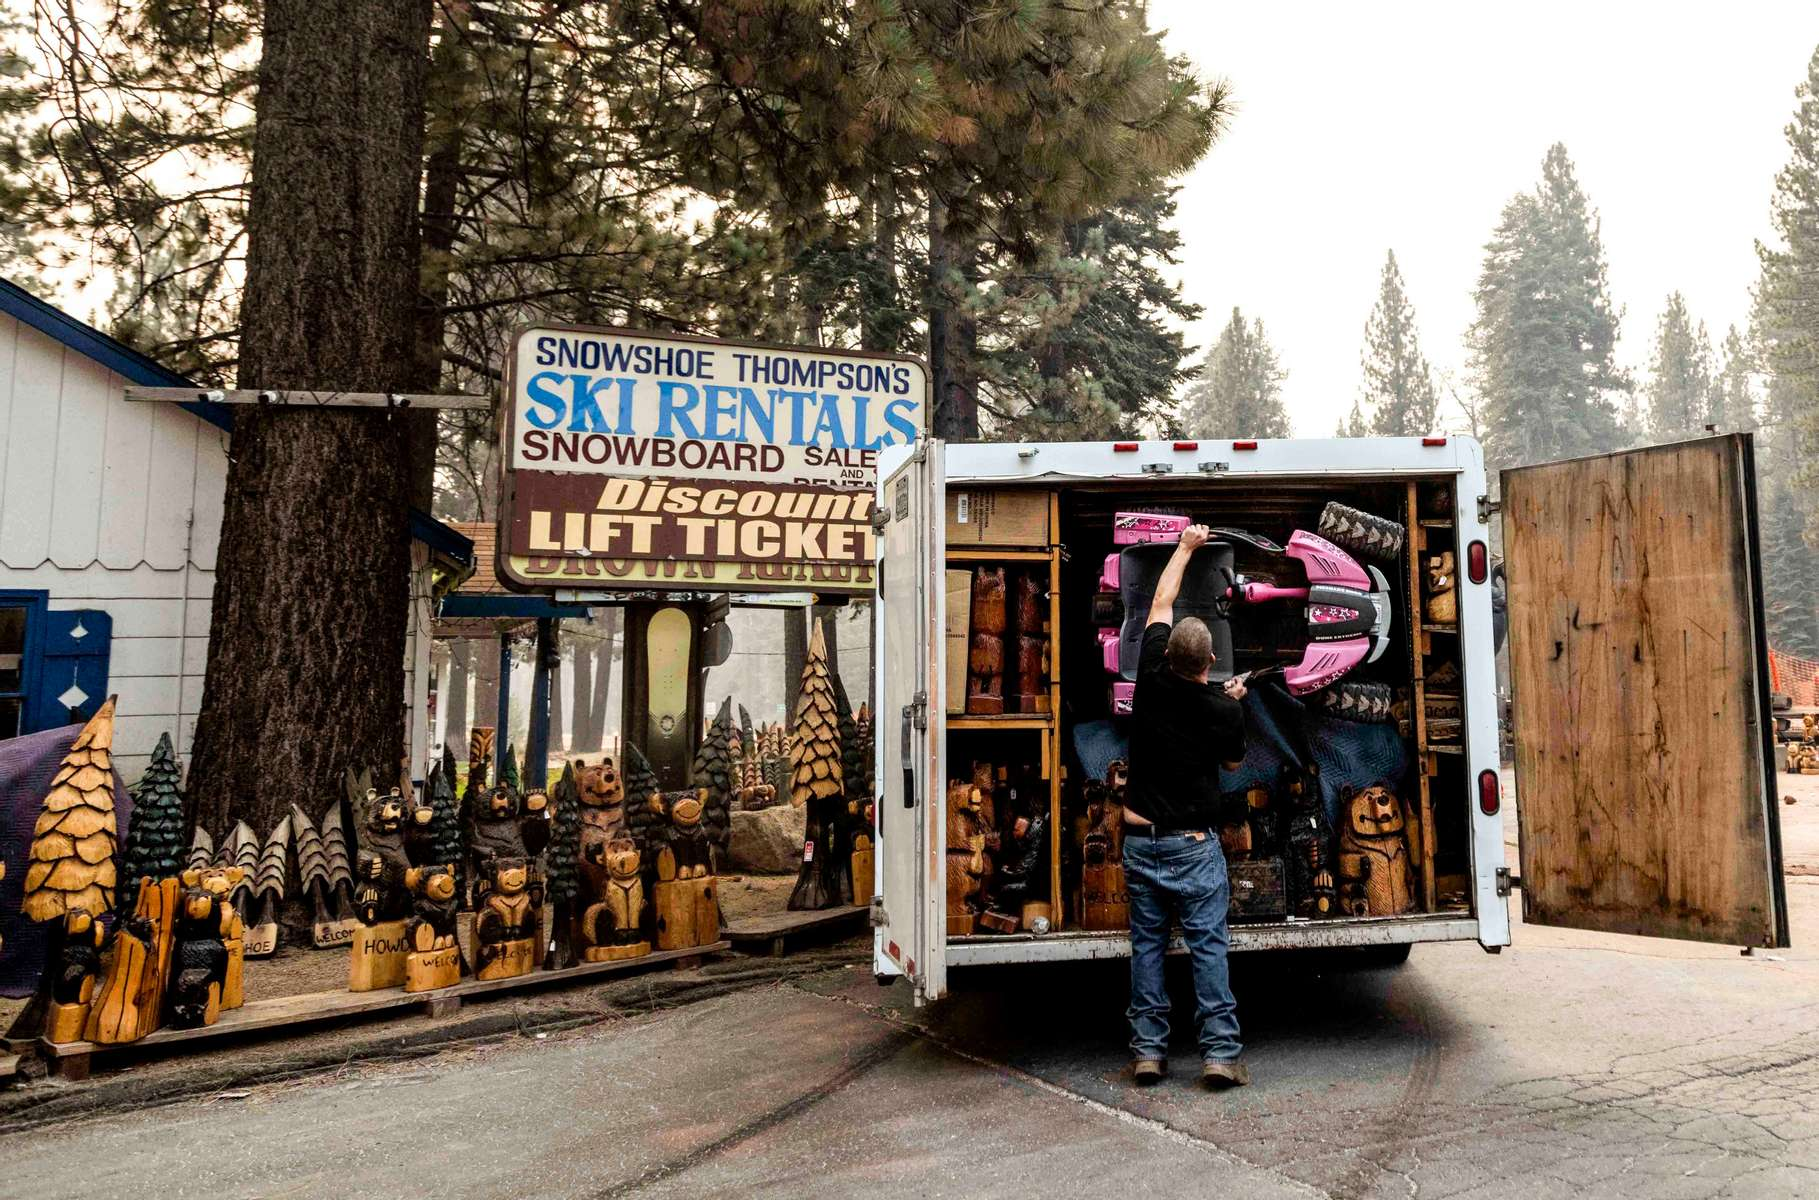 People evacuates as South Lake Tahoe is under mandatory evacuation with the Caldor fire approaching on August 30, 2021, in South Lake Tahoe, California. The Caldor Fire has burned almost 200.000 acres, destroyed over 660 structures and is currently 16 percent contained.